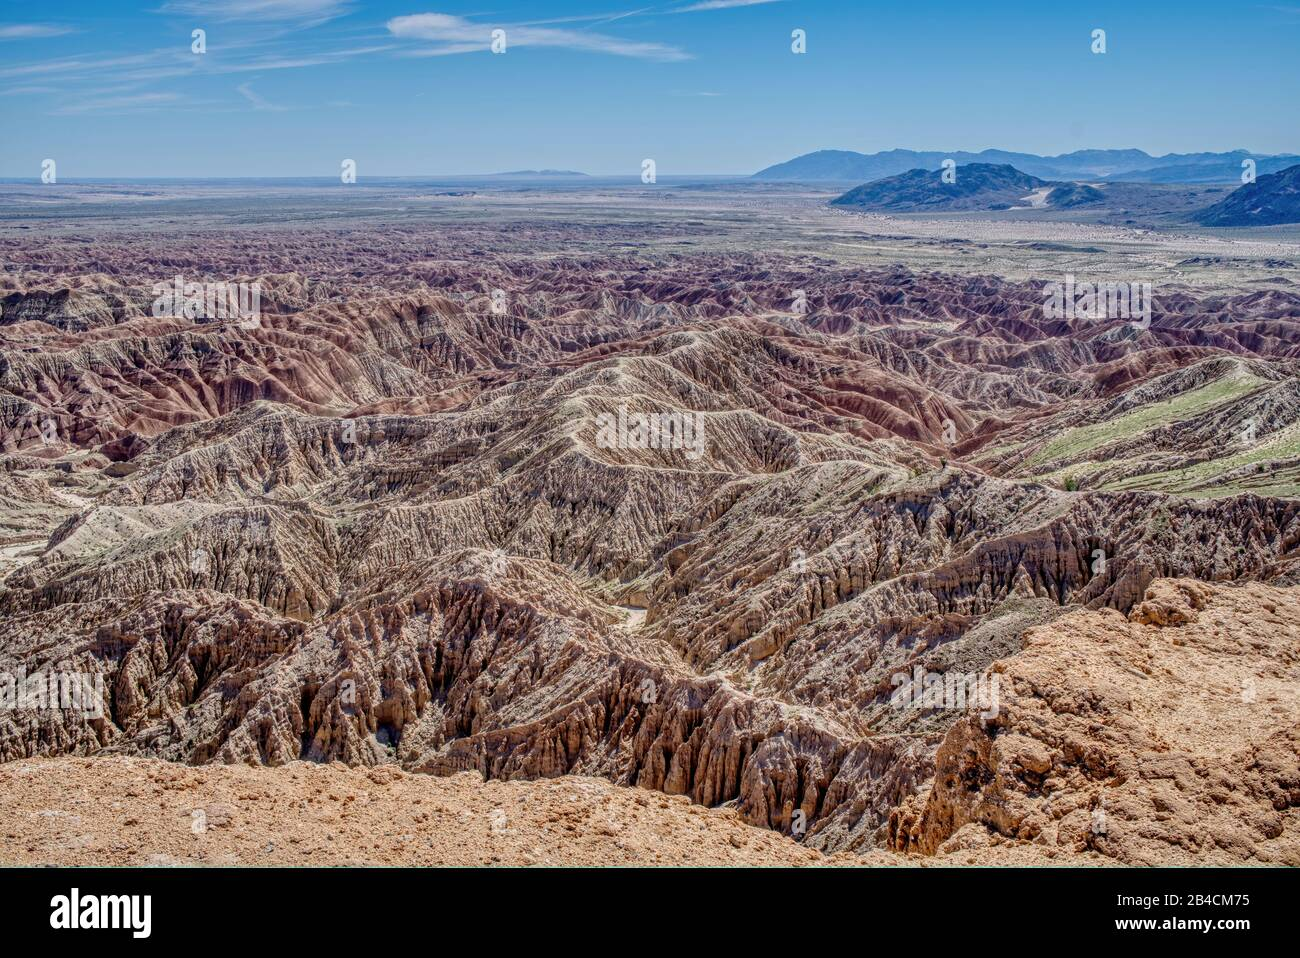 Anza Borrego Desert State Park Is A California State Park Located Within The Colorado Desert Of Southern California With 600 000 Acres That Includes Stock Photo Alamy,Chocolate Cherry Caramel Chocolate Brown Hair Color